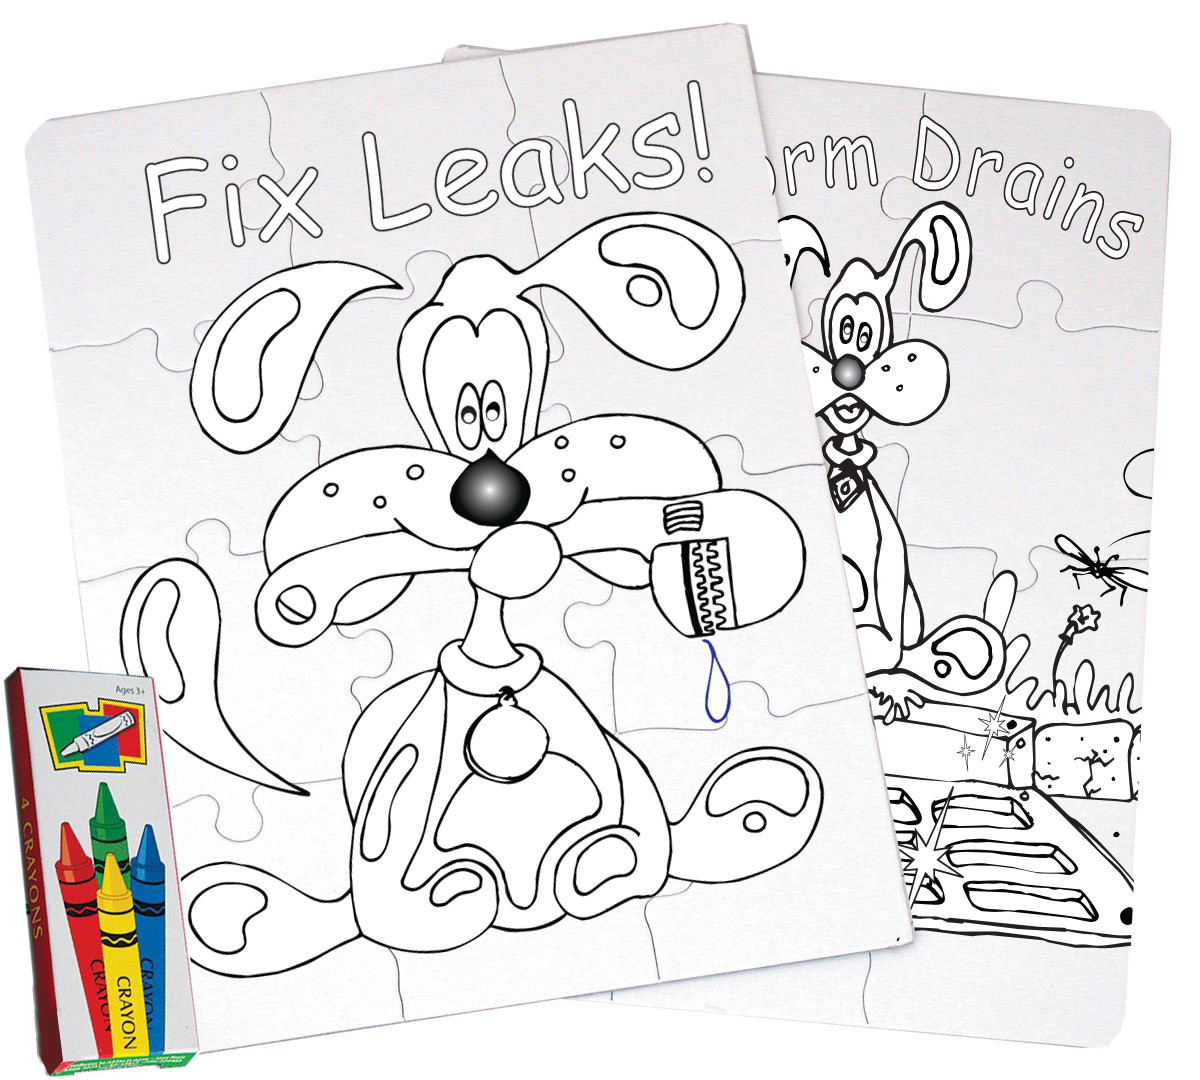 Coloring Puzzles With Splash the Water Dog - Great Gift Idea